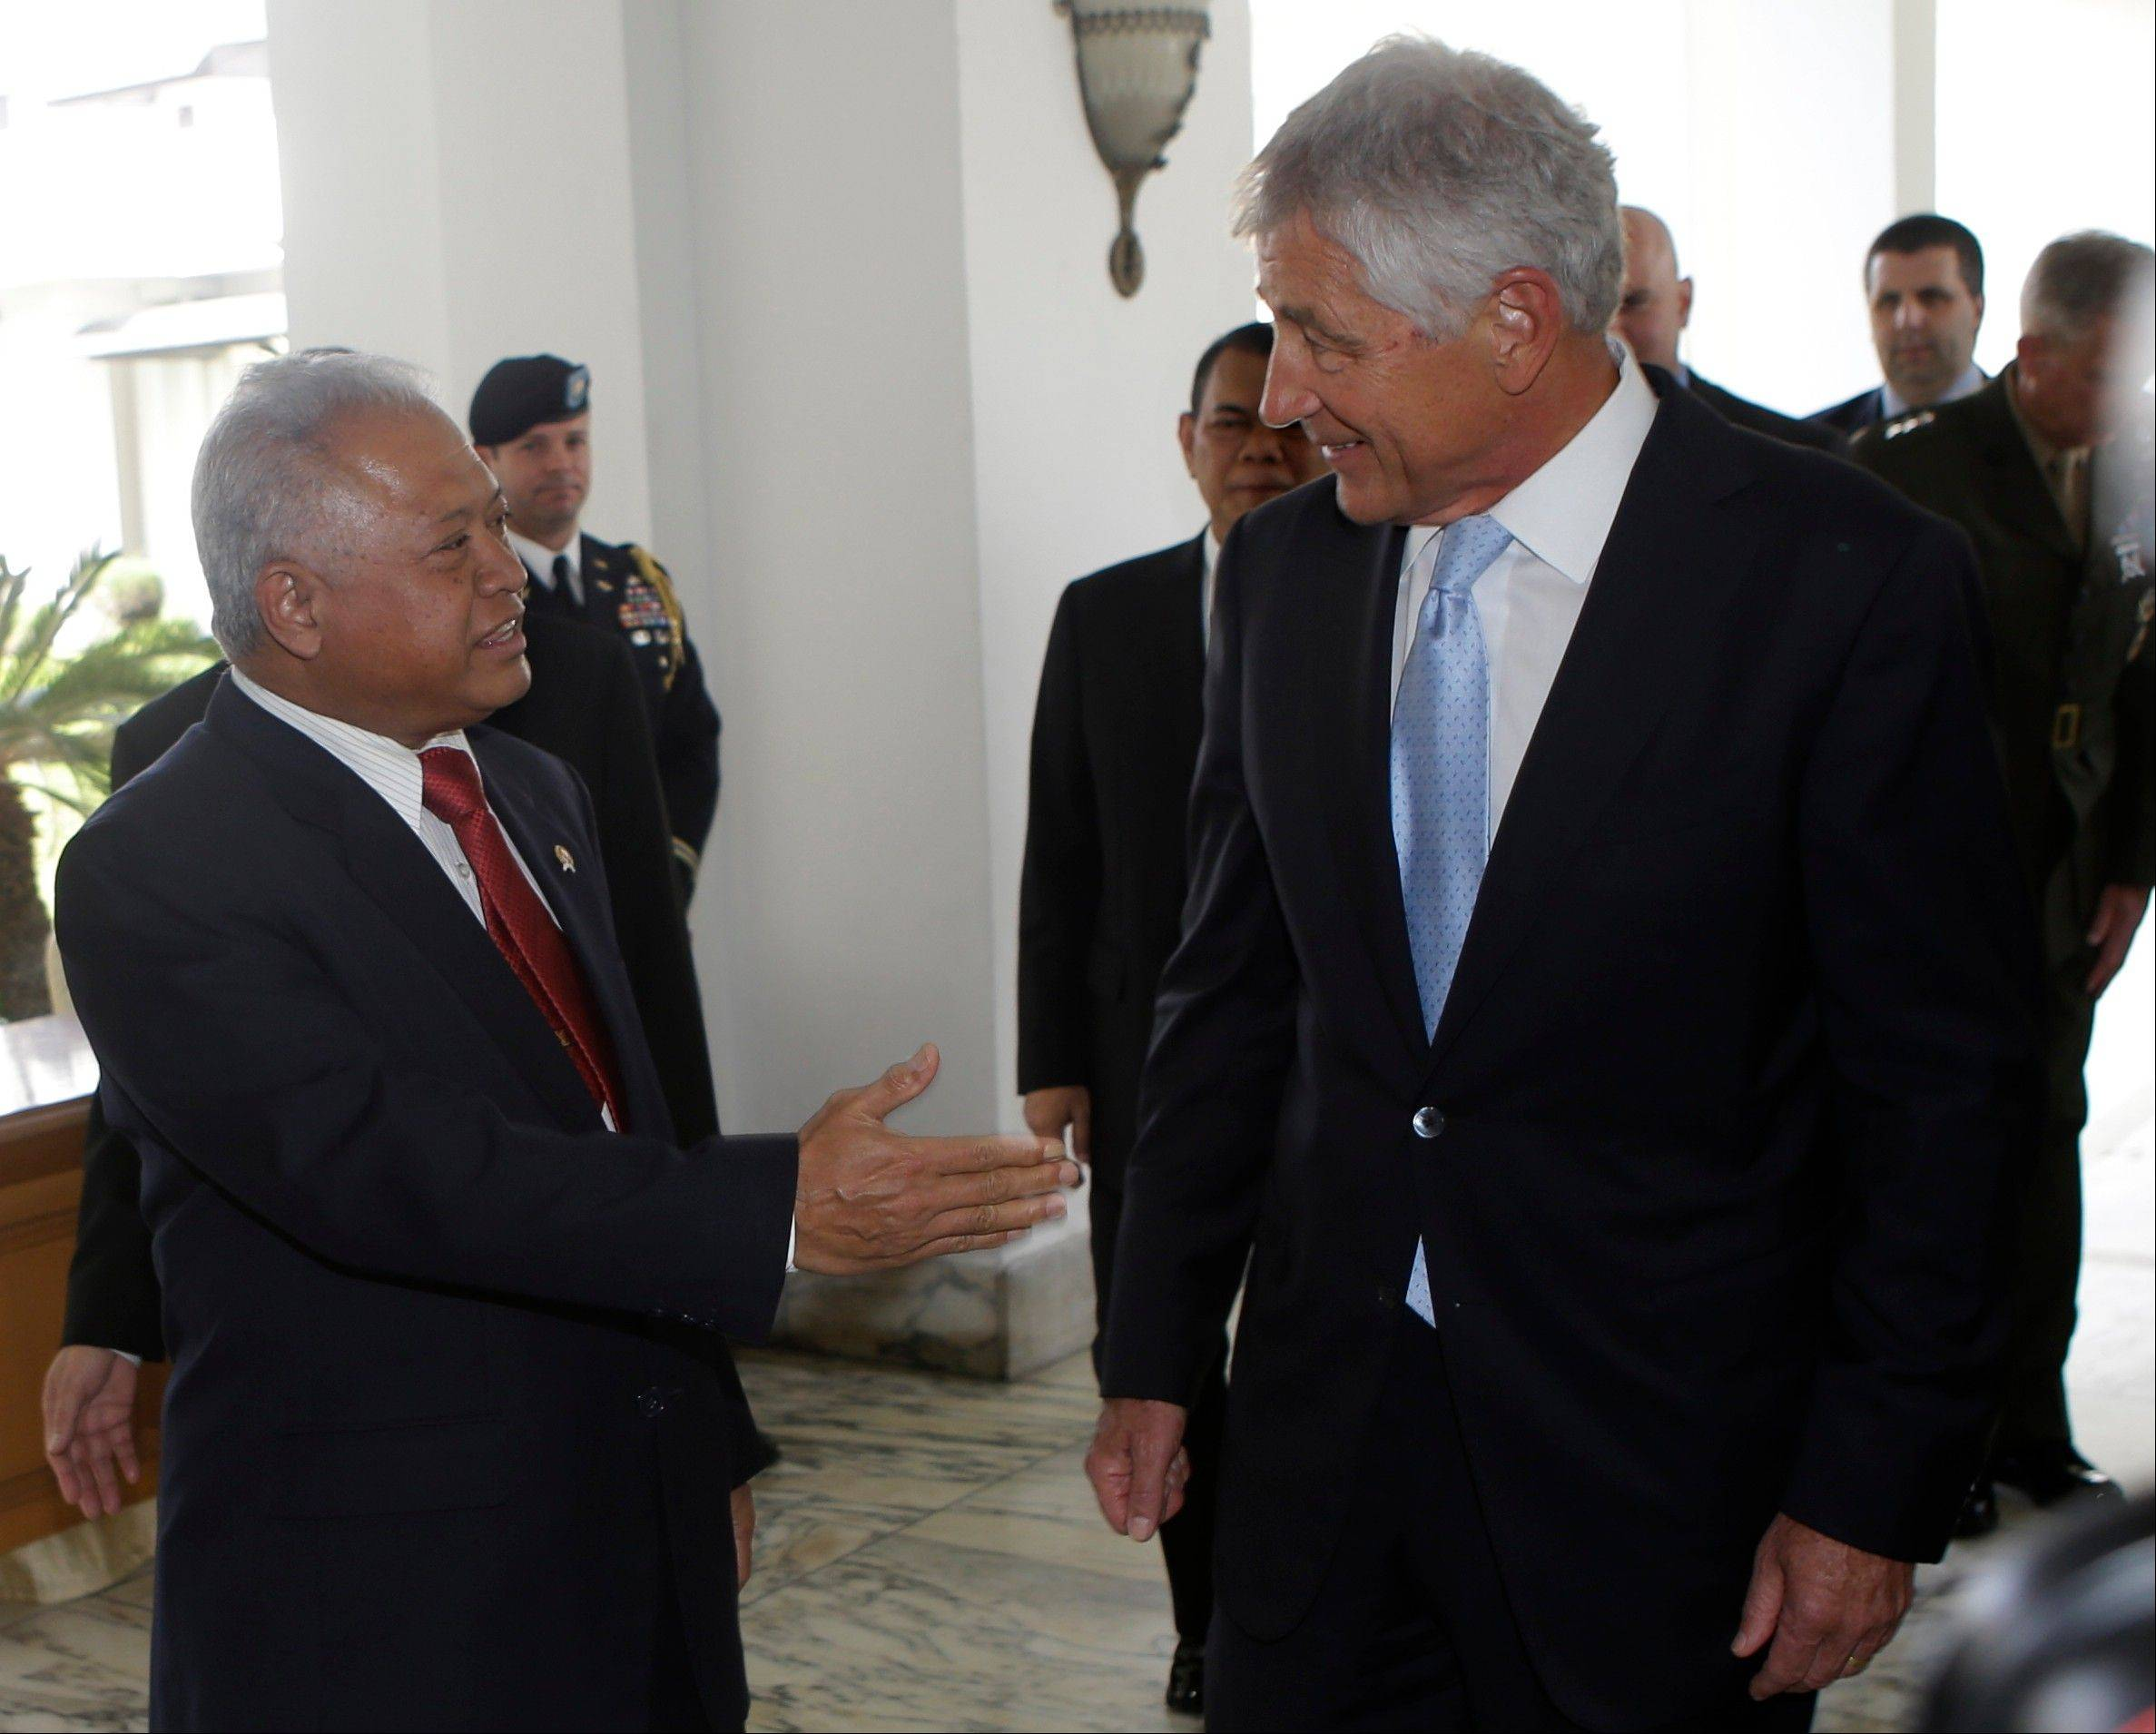 U.S. Defense Secretary Chuck Hagel, right, who is talks with Indonesian Defense Minister Purnomo Yusgiantoro Monday, said the Obama administration was studying intelligence on Syria�s purported use of chemical weapons and �will get the facts� before acting.